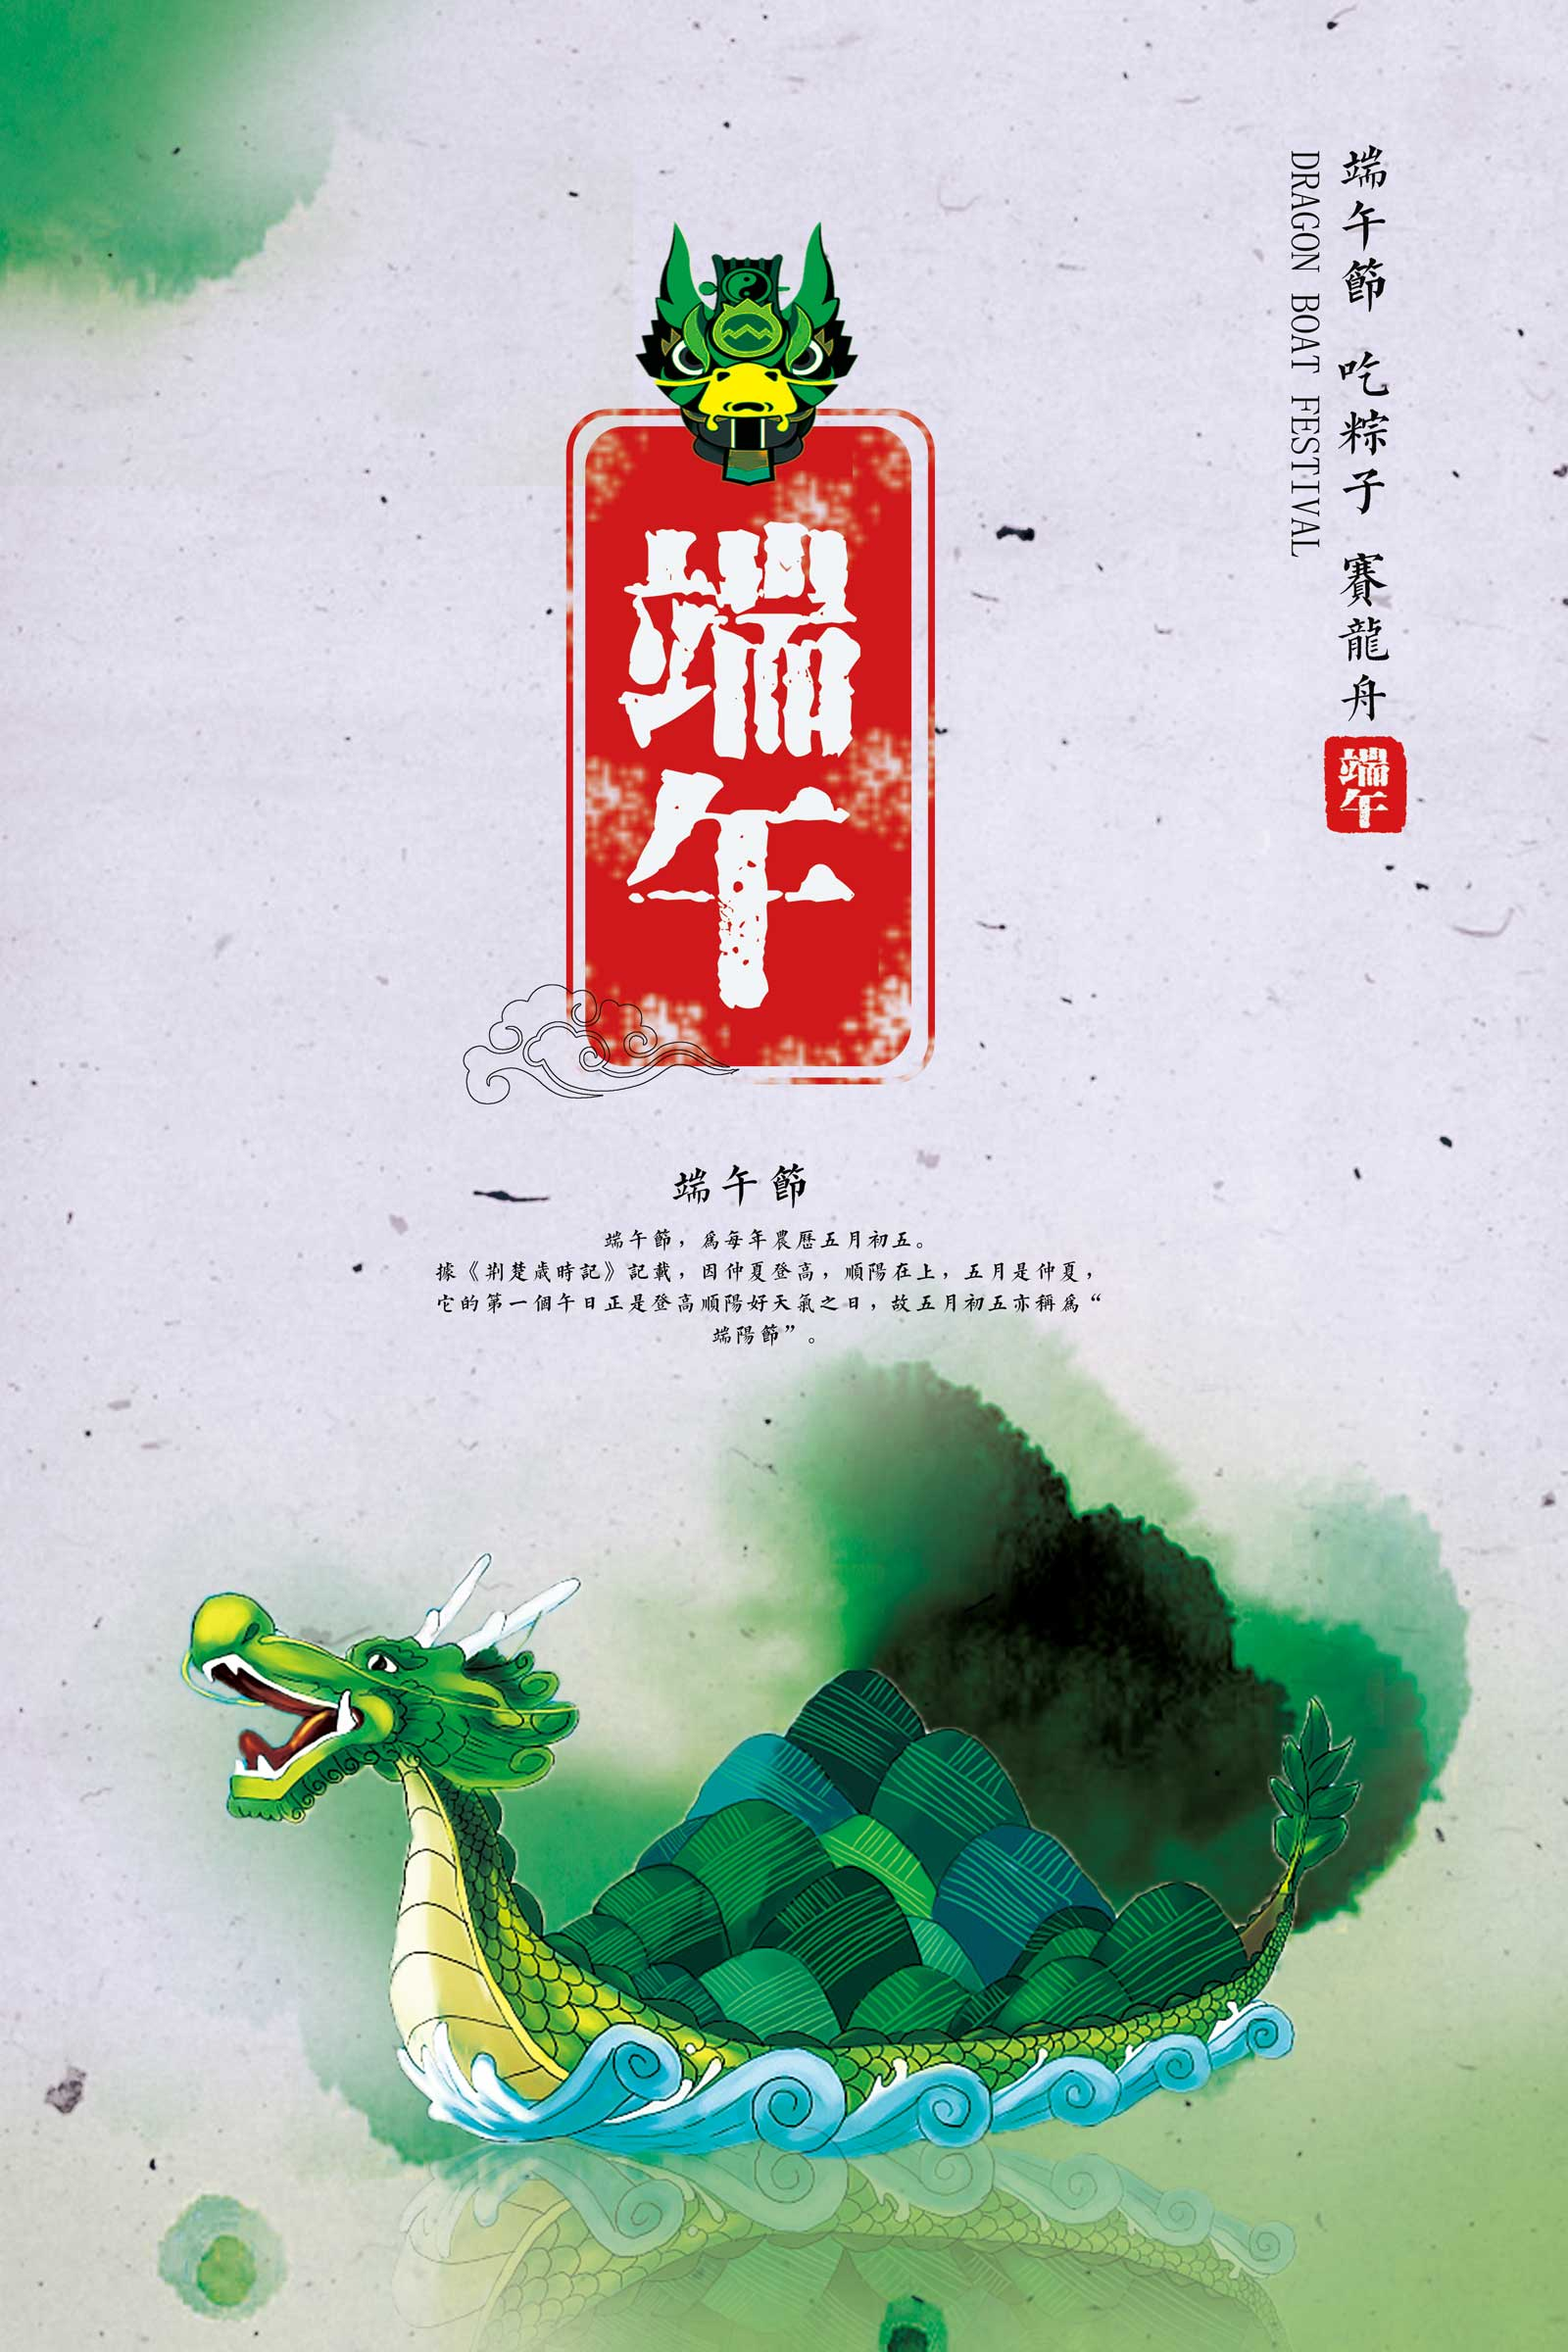 The Dragon Boat Festival A beautiful poster design - China PSD File Free Download